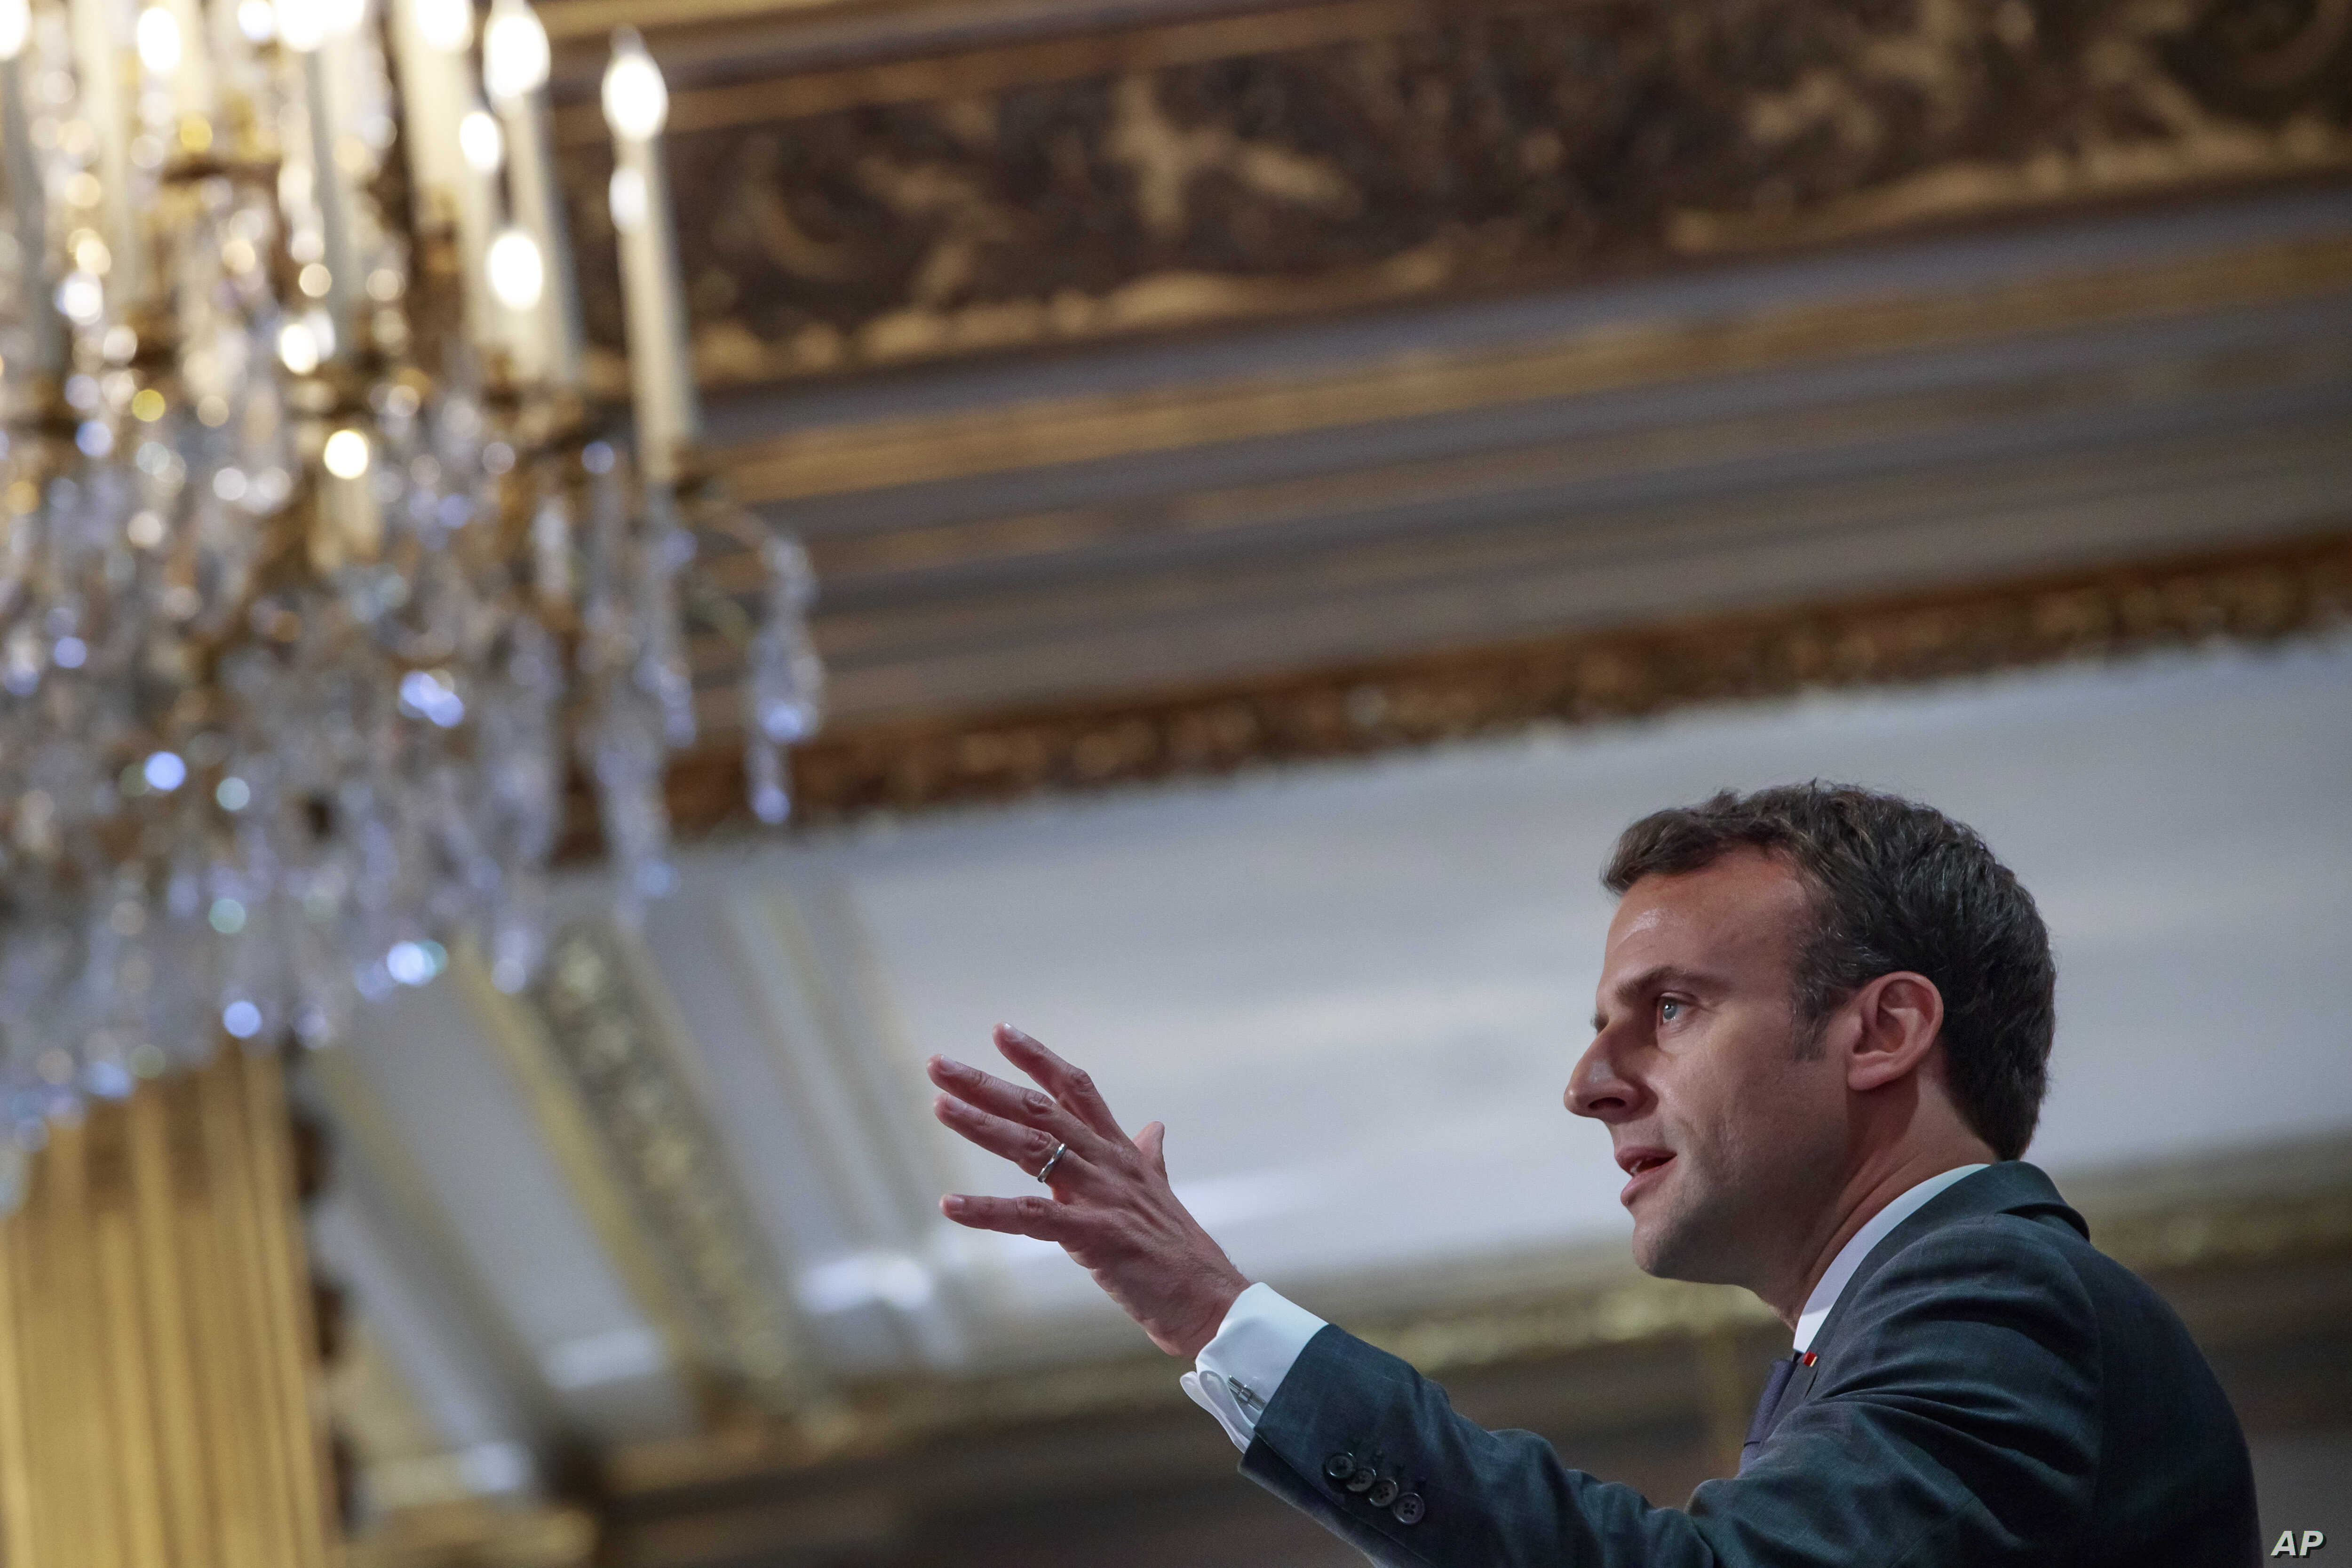 French President Emmanuel Macron addresses Paris Firefighters' brigade and security forces who took part at the fire extinguishing operations of the Notre Dame of Paris Cathedral fire, at the Elysee Palace in Paris, April 18, 2019.